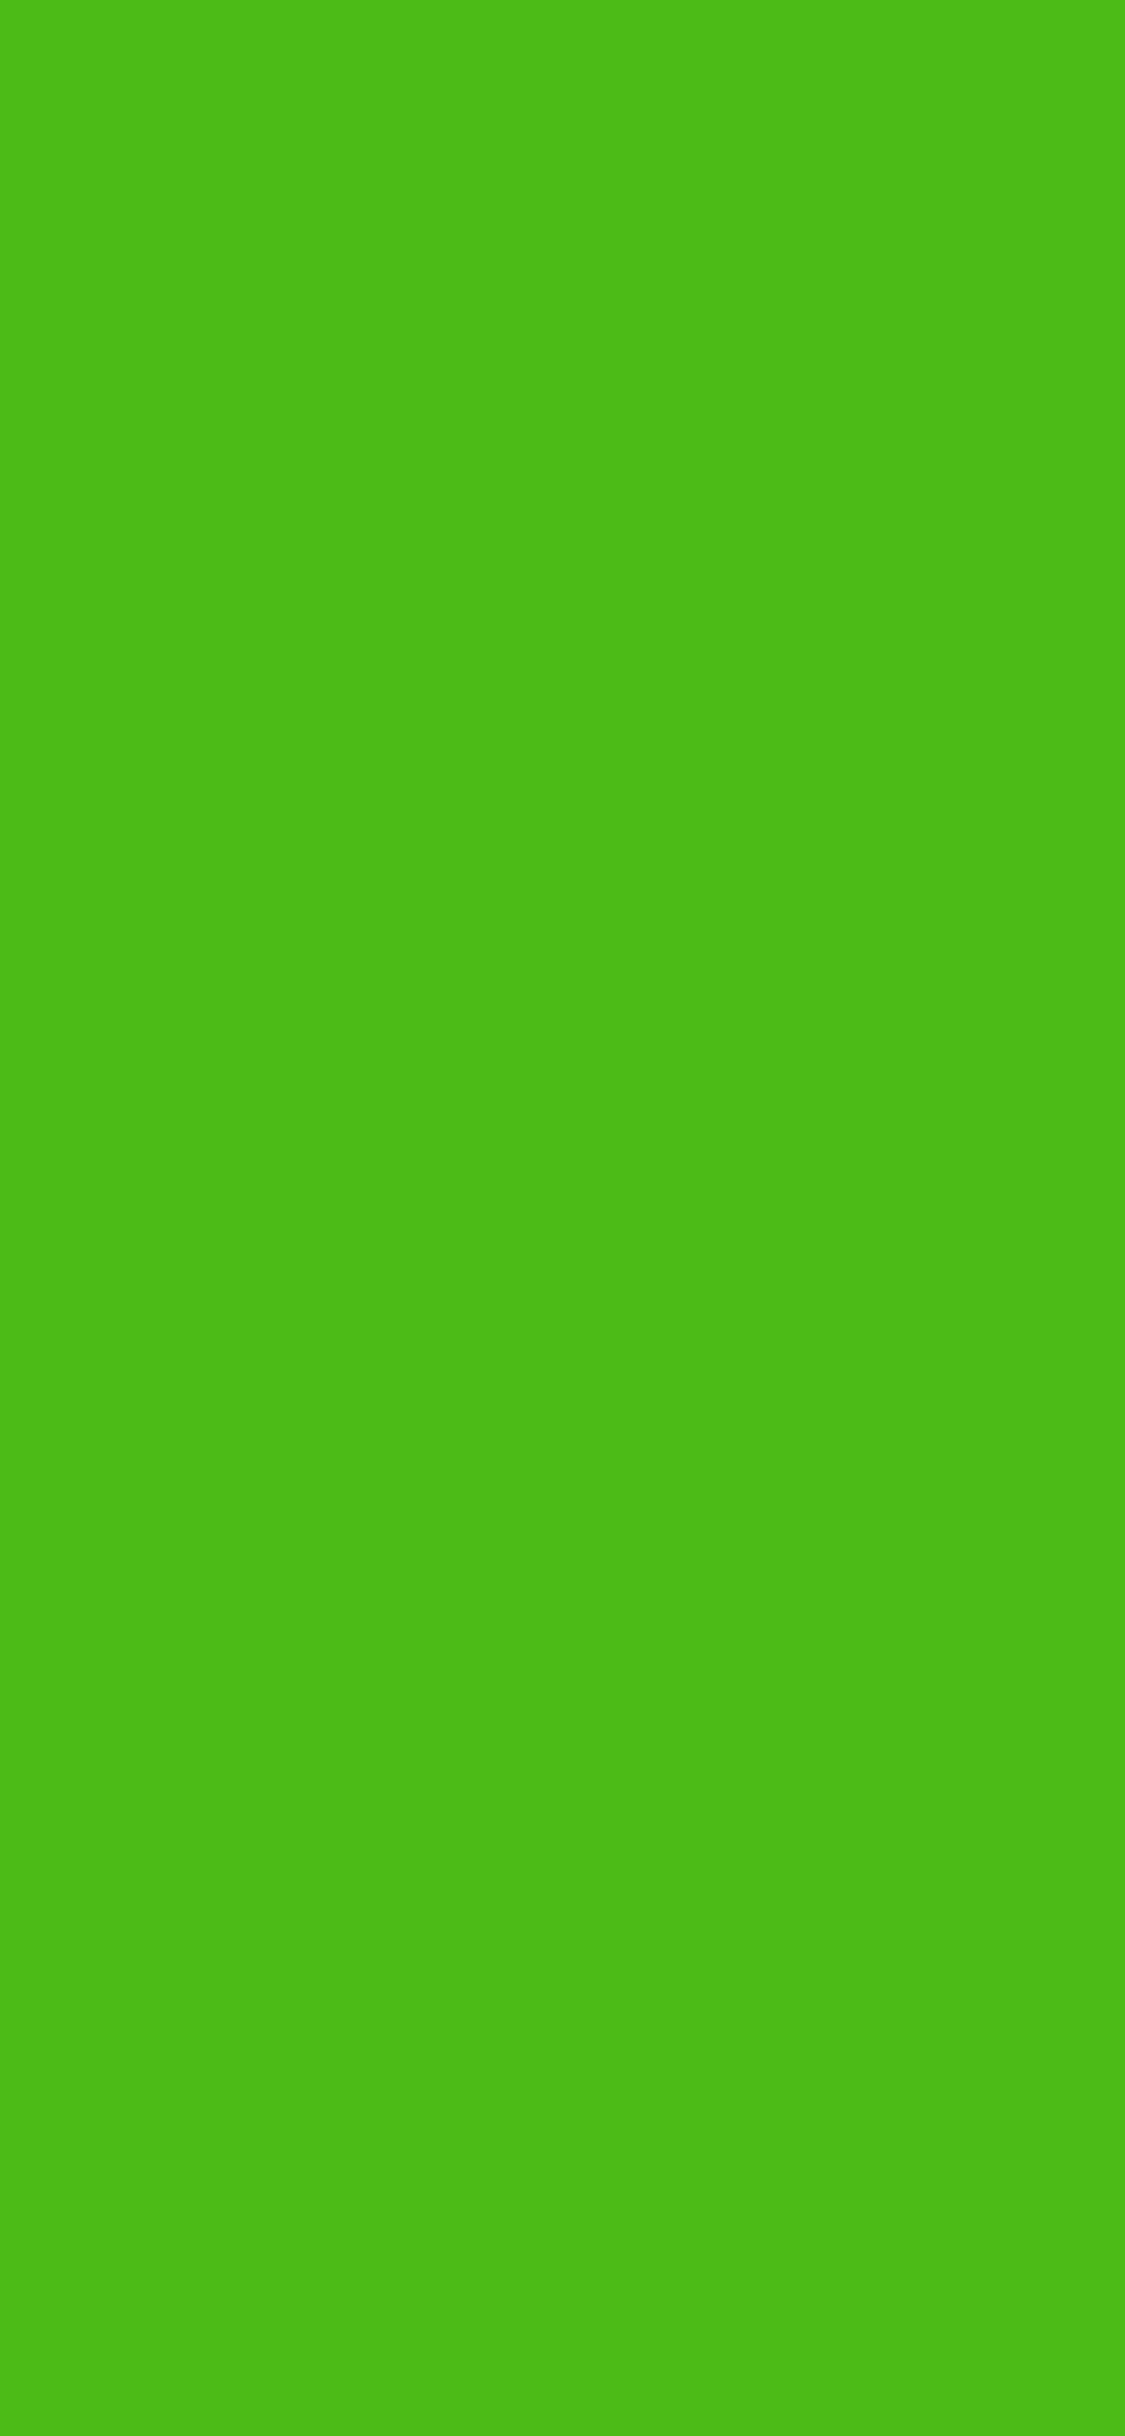 1125x2436 Kelly Green Solid Color Background